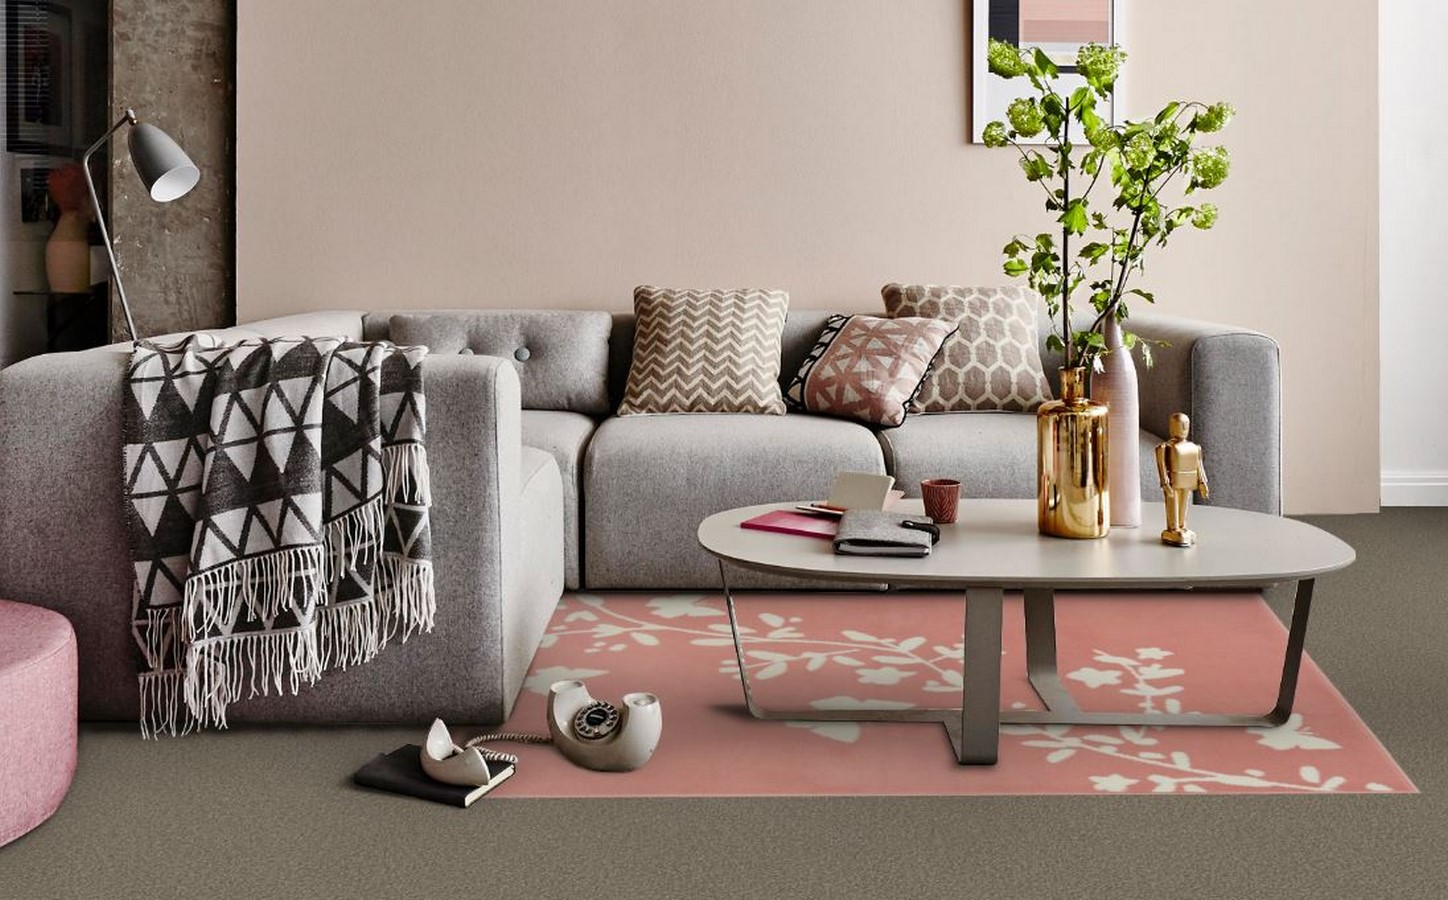 10 Ways to style rugs in your home! - Sheet18